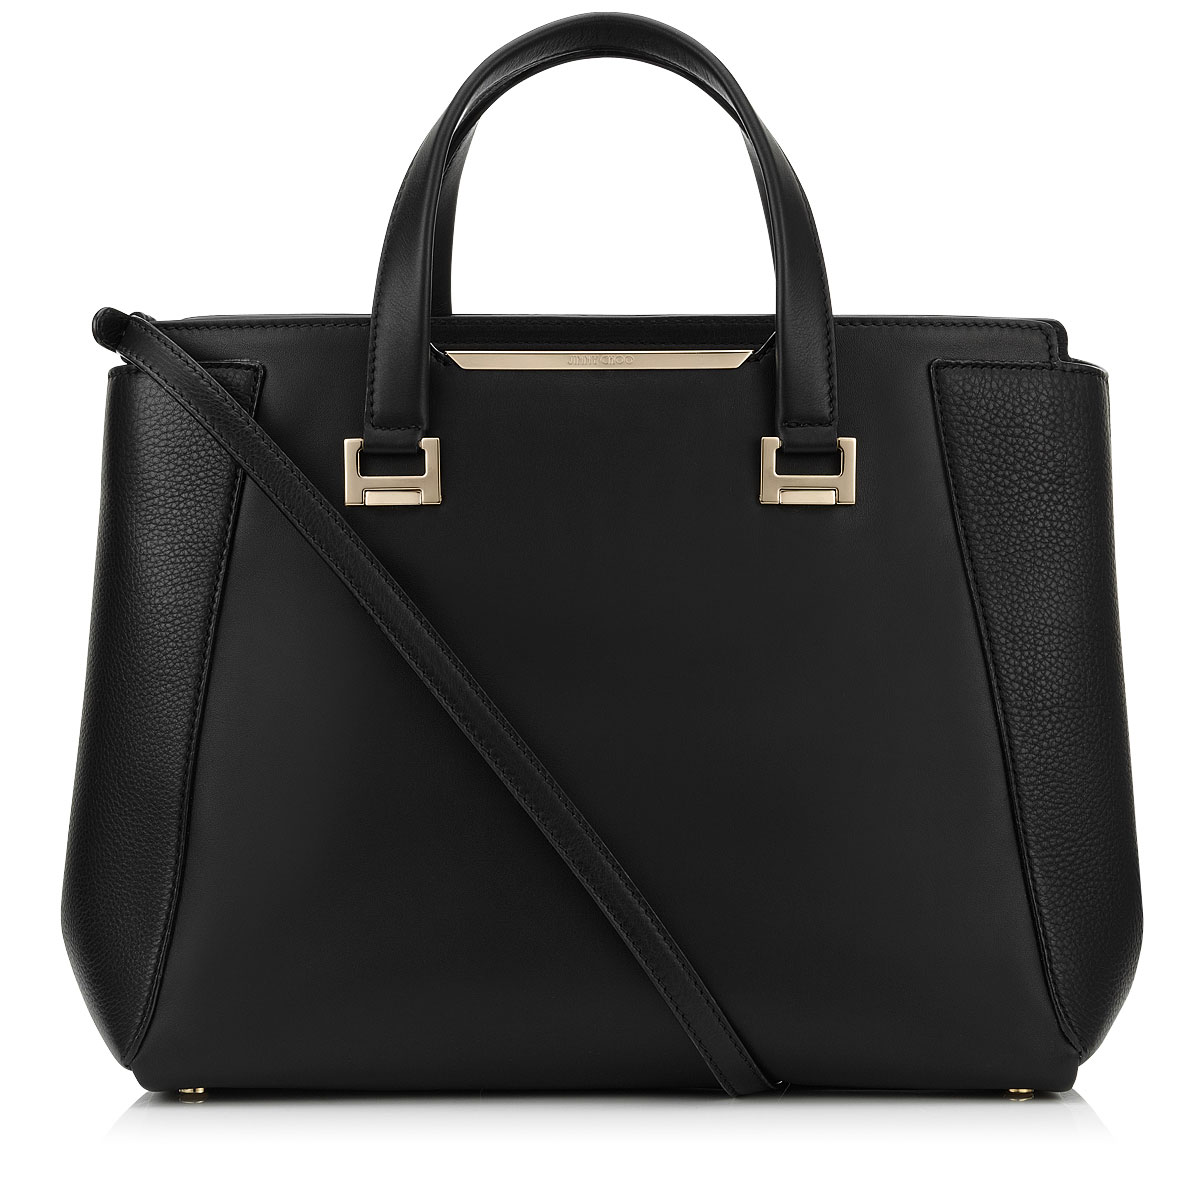 ALFIE L Black Soft Smooth and Soft Calf Leather Tote Bag